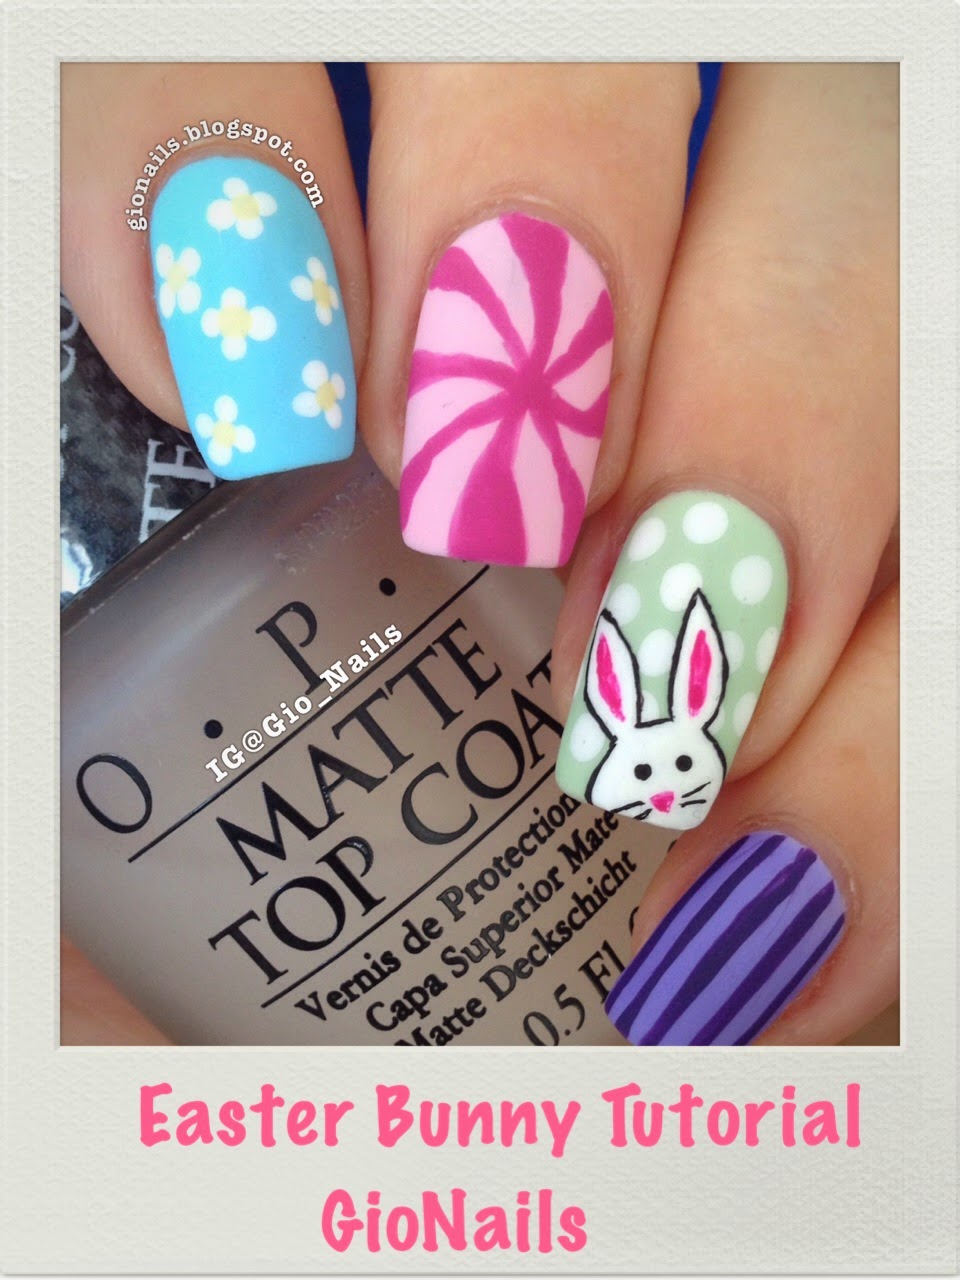 http://gionails.blogspot.be/2014/04/easter-bunny-tutorial.html